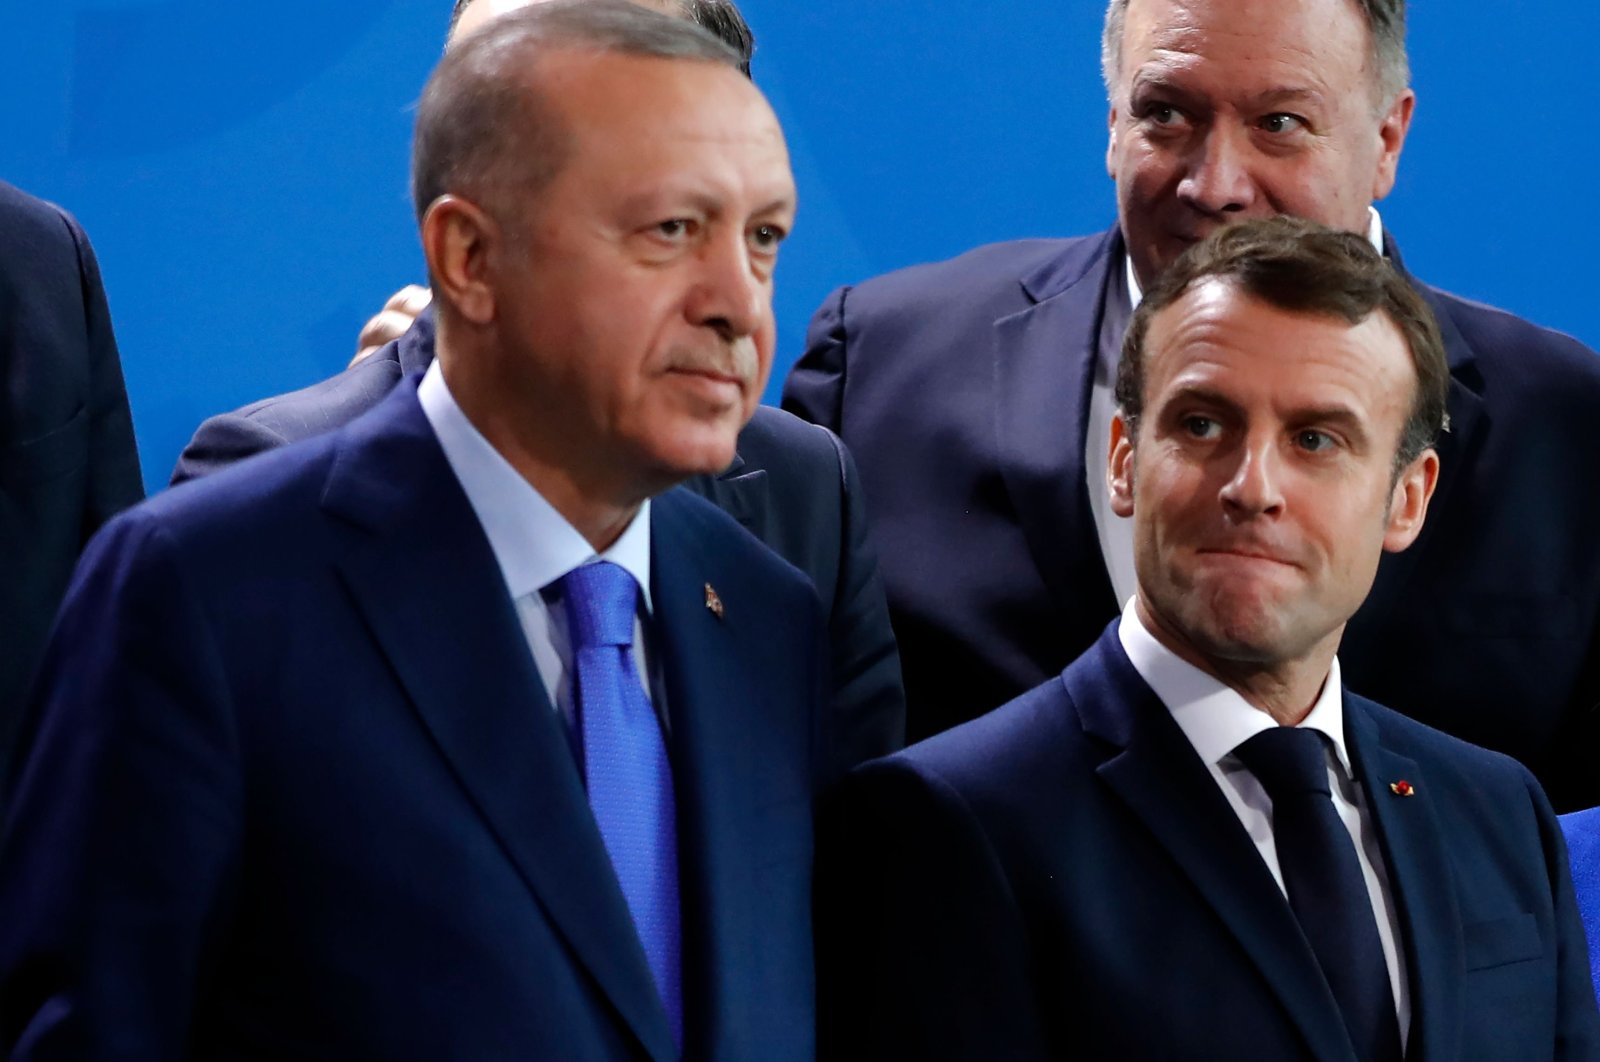 President Recep Tayyip Erdogan (L) and  French President Emmanuel Macron standing side-by-side as they wait for the family picture during a Peace summit on Libya at the Chancellery in Berlin, Jan.19, 2020. (AFP)